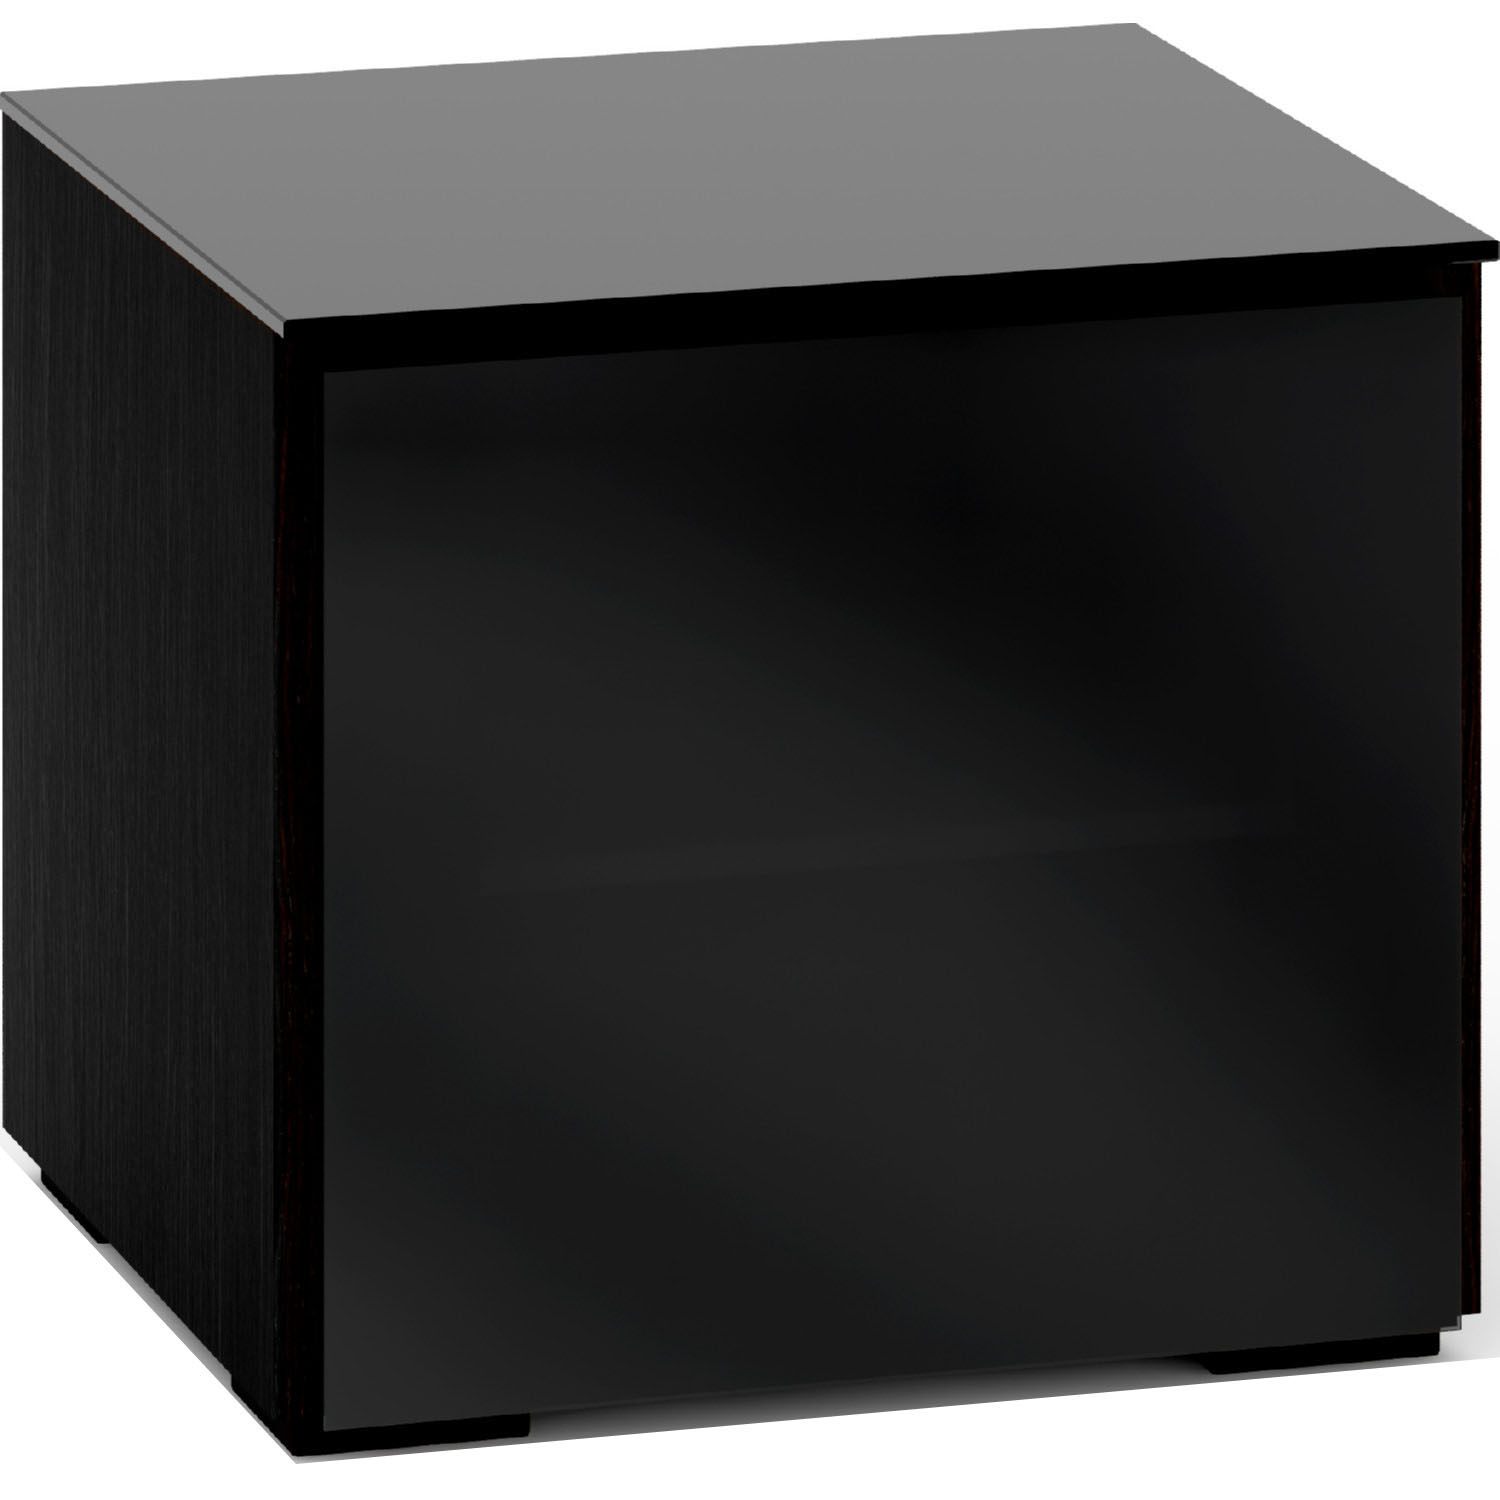 Oslo 217 Av Cabinet In Black Oak W Smoked Black Glass Doors Top By Salamander Designs